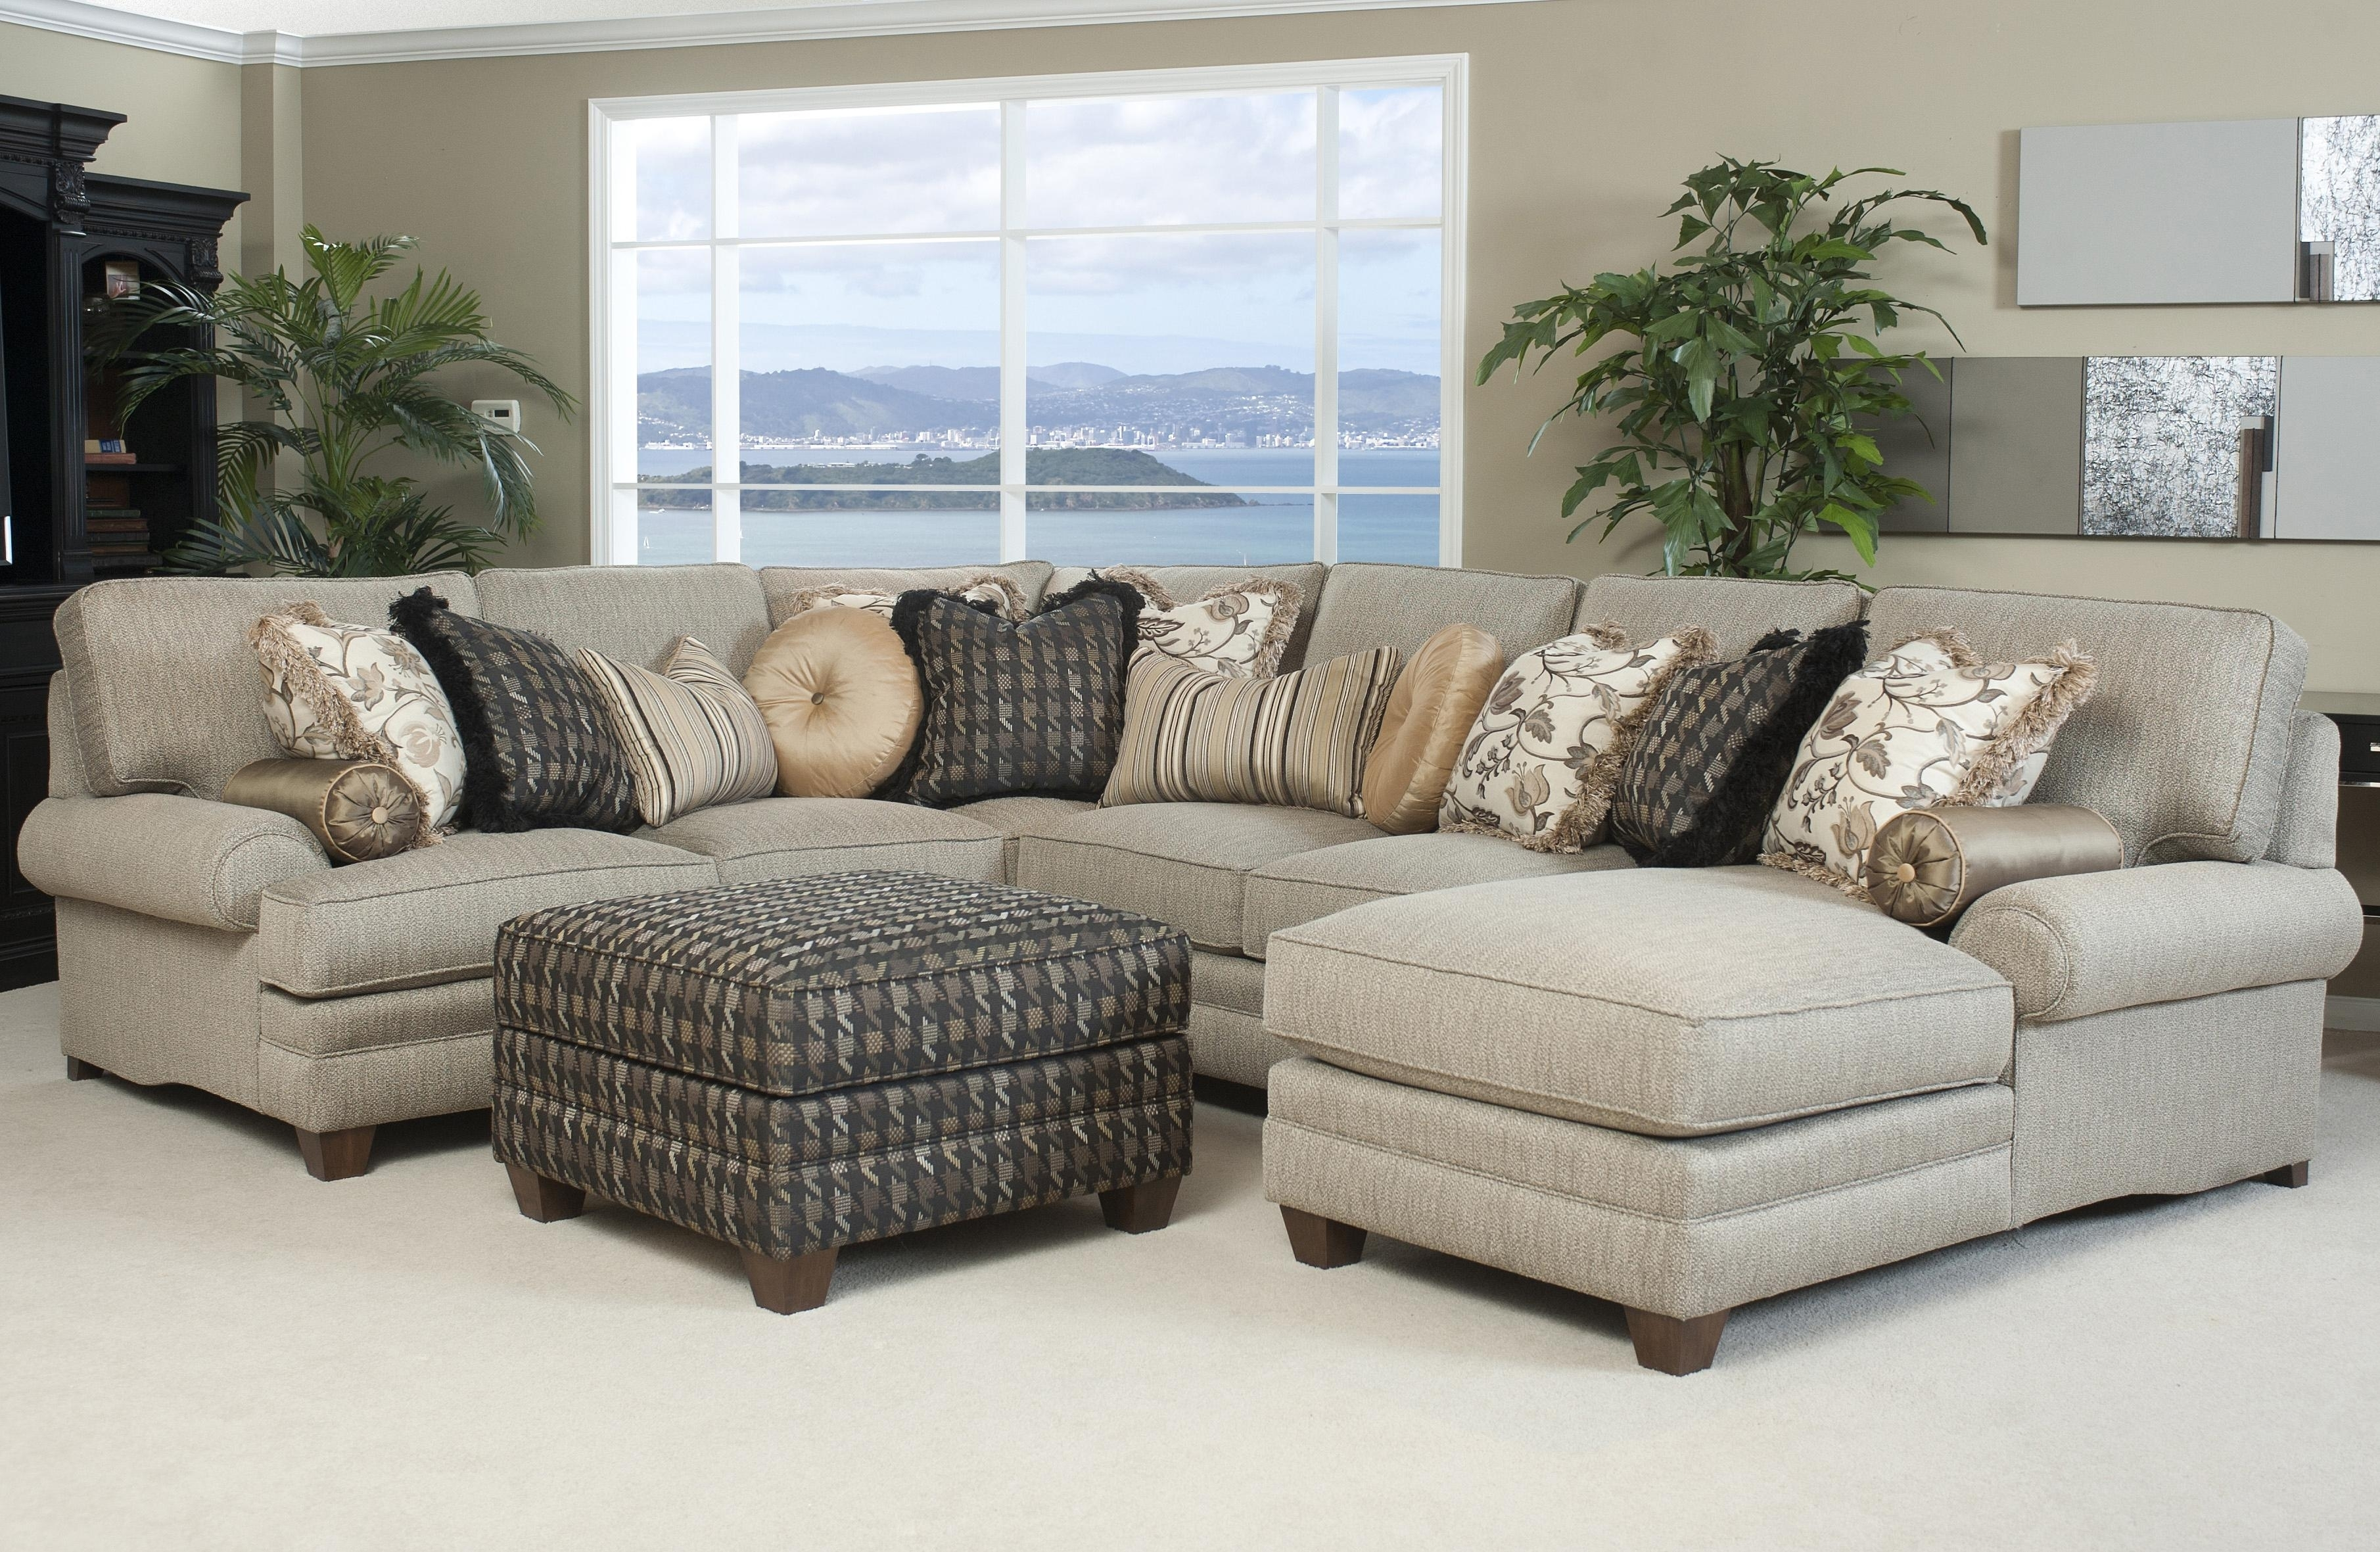 Leather Sectional Sofa Tulsa • Sectional Sofa With Regard To Tulsa Sectional Sofas (View 4 of 10)